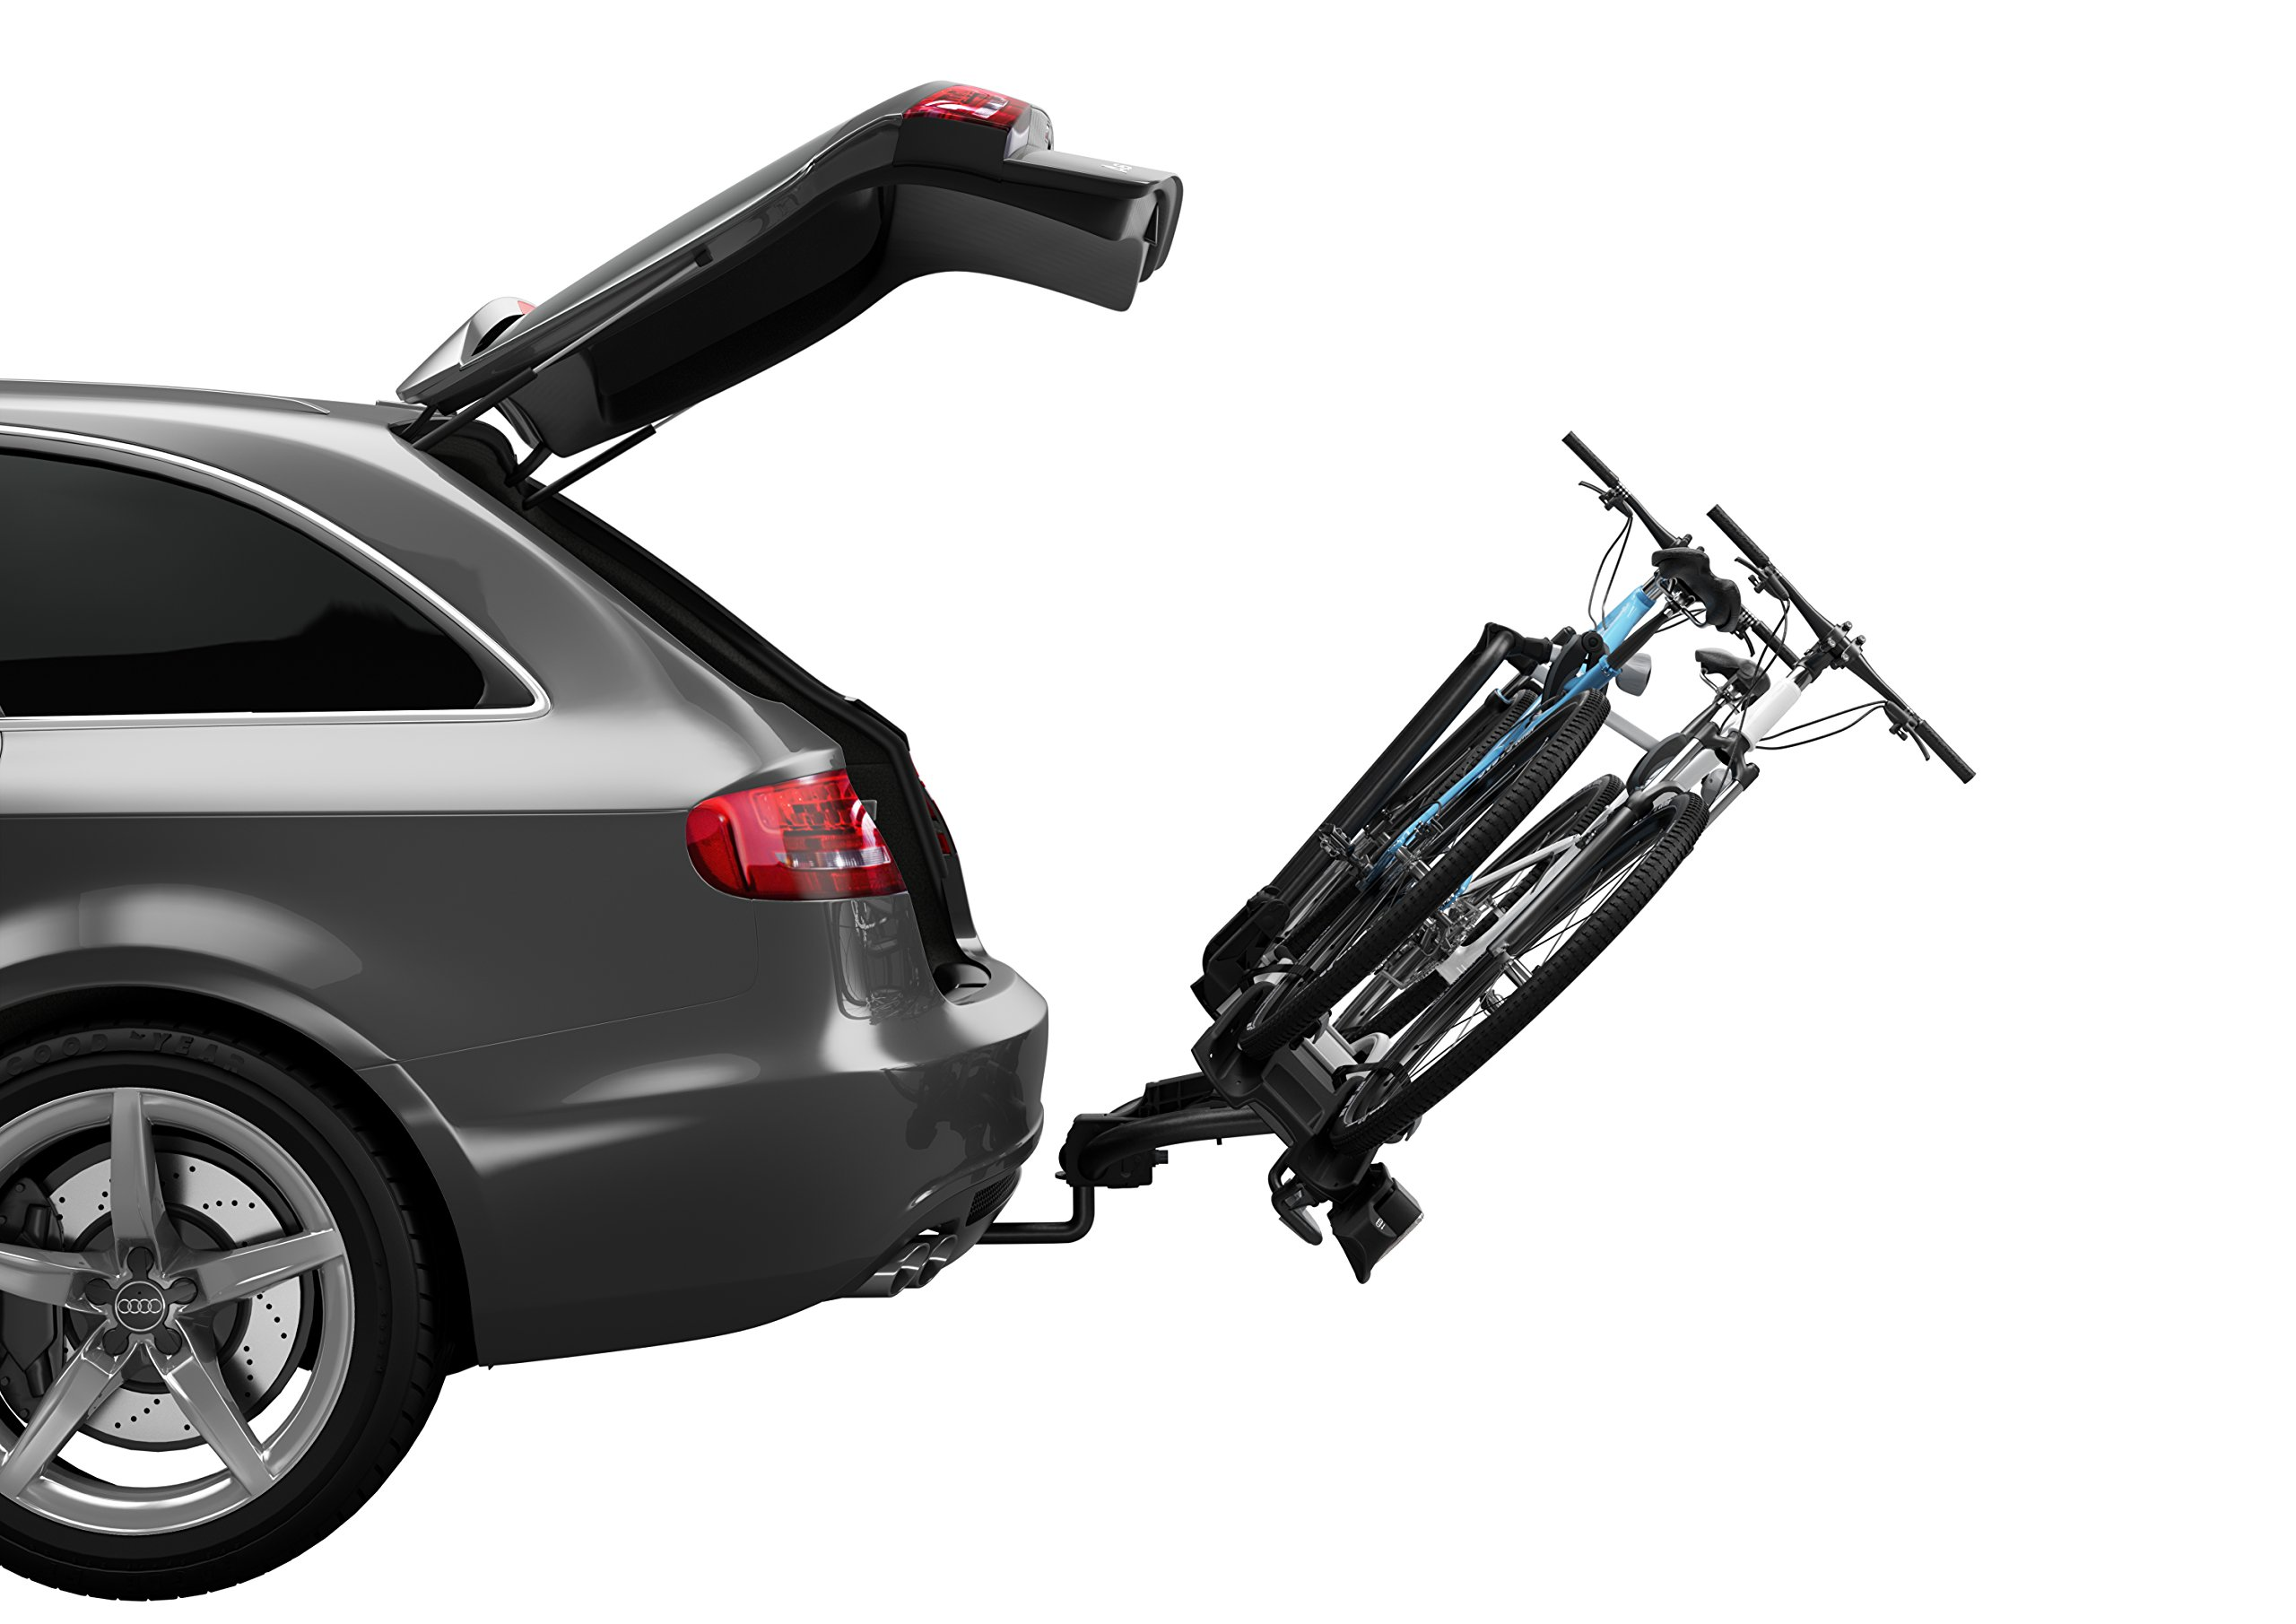 Thule 925001,Velo Compact 925, 2Bike, Towball Carrier, 7 pin 4